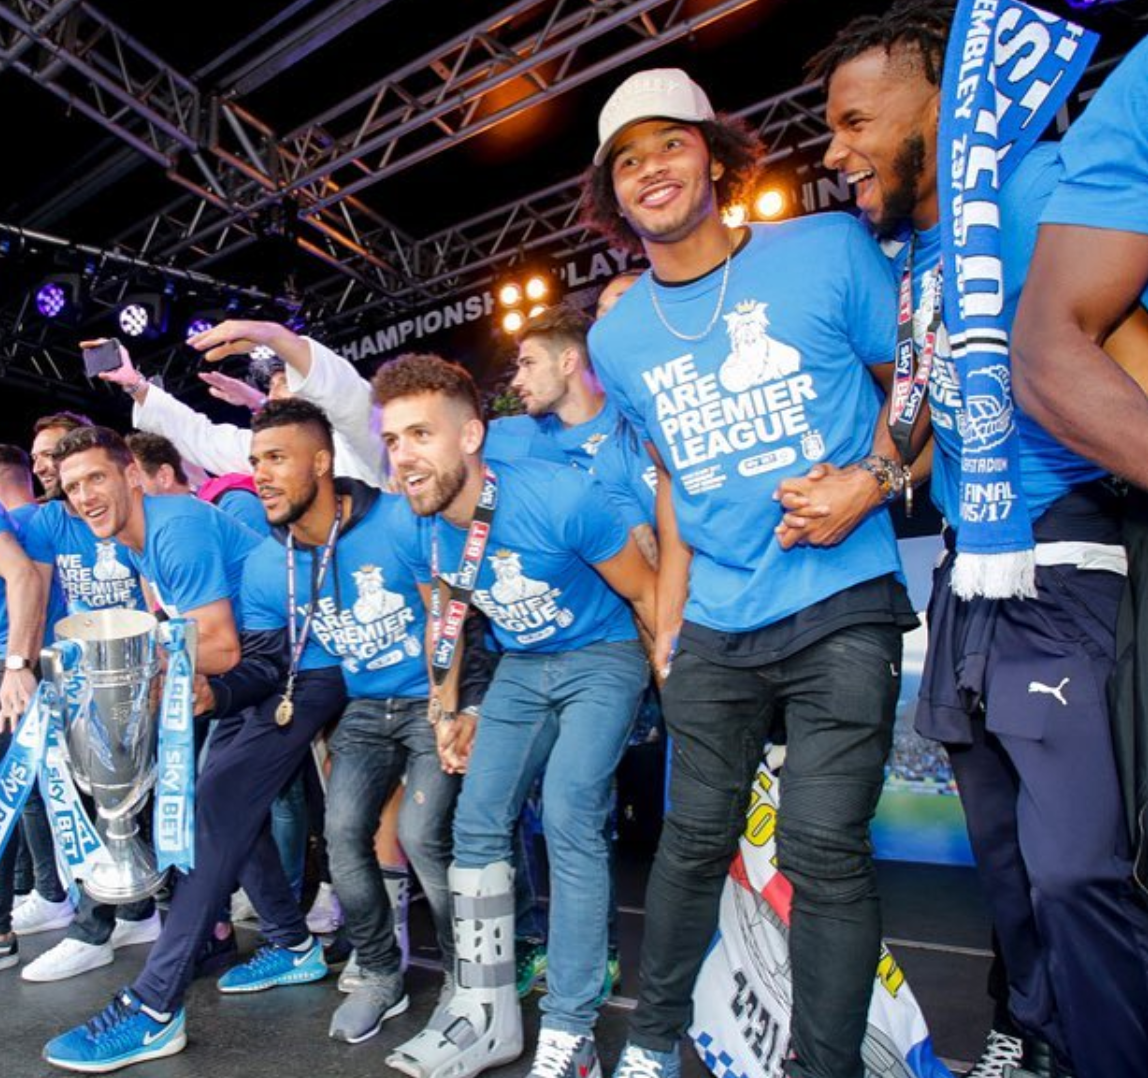 Huddersfield Town Players on stage at local Town Hall with trophy